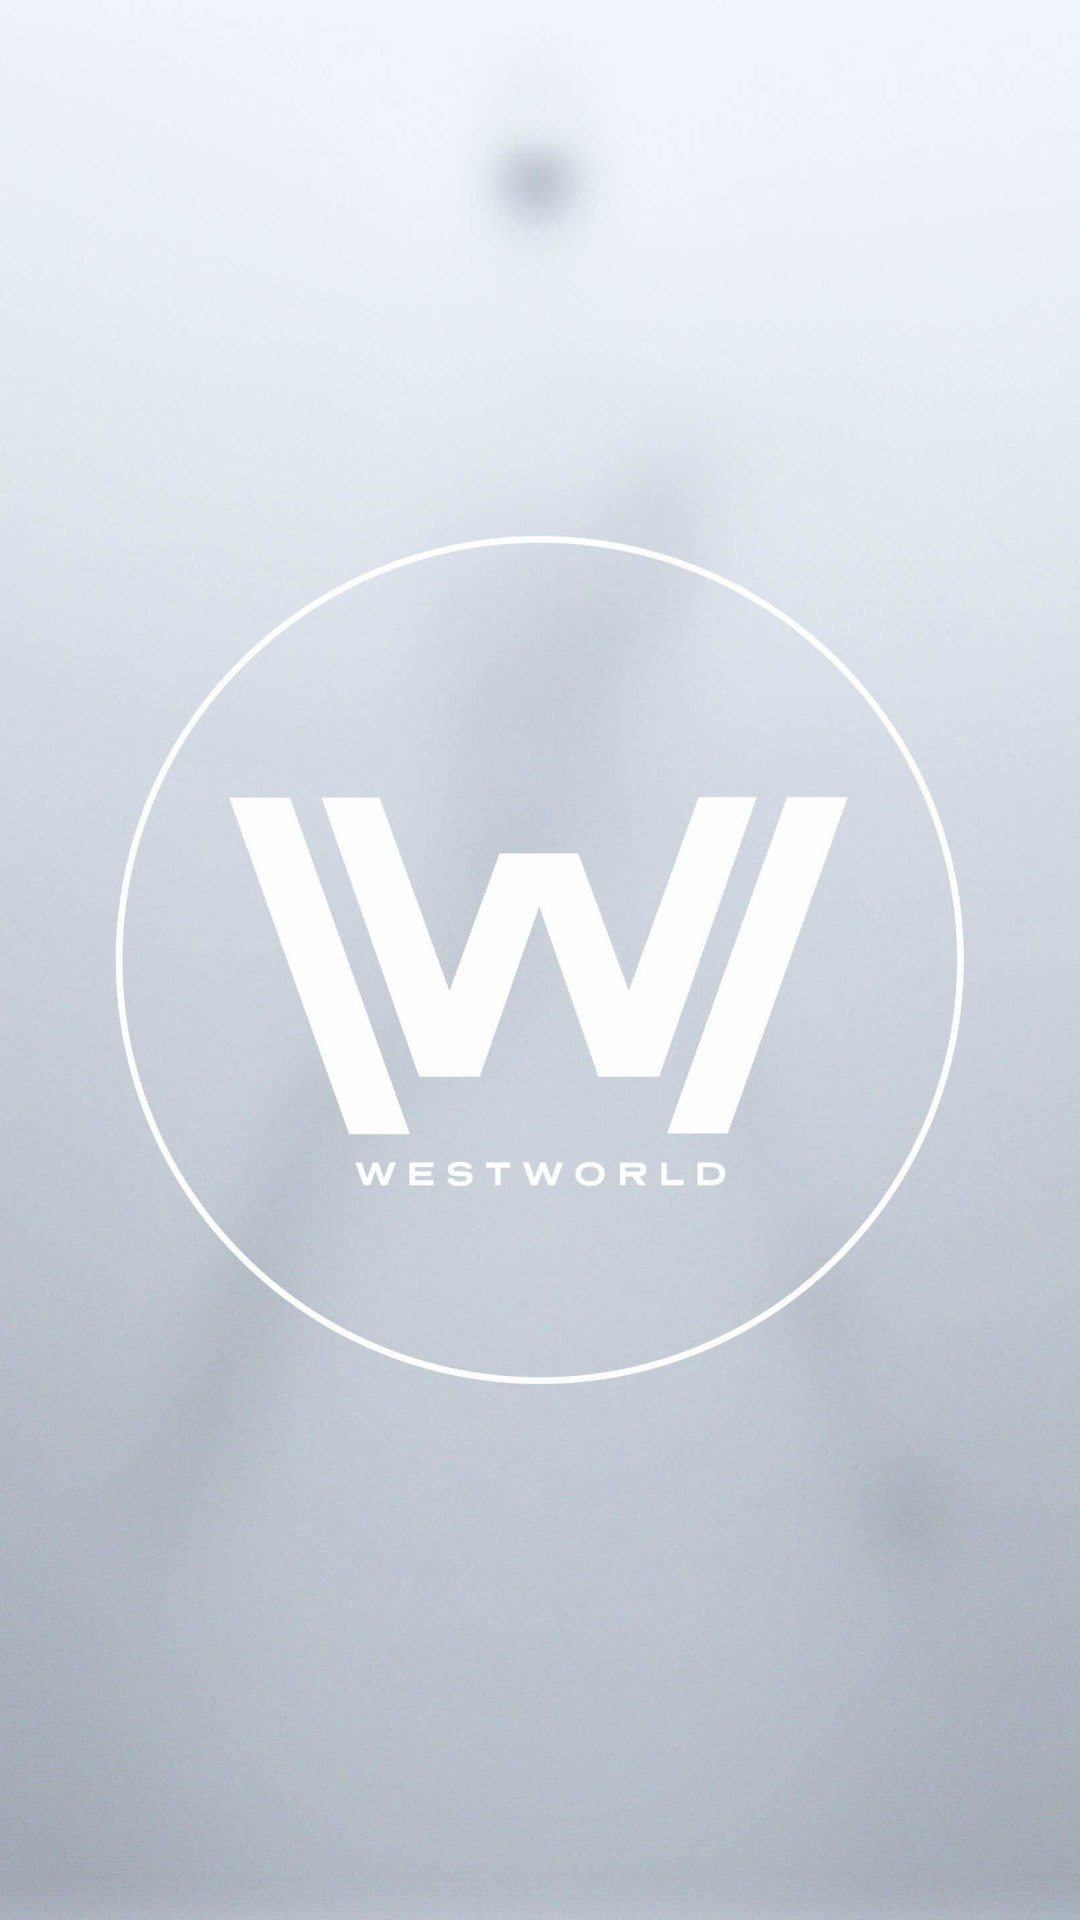 Westworld Logo Wallpaper for SAMSUNG Galaxy Note 3